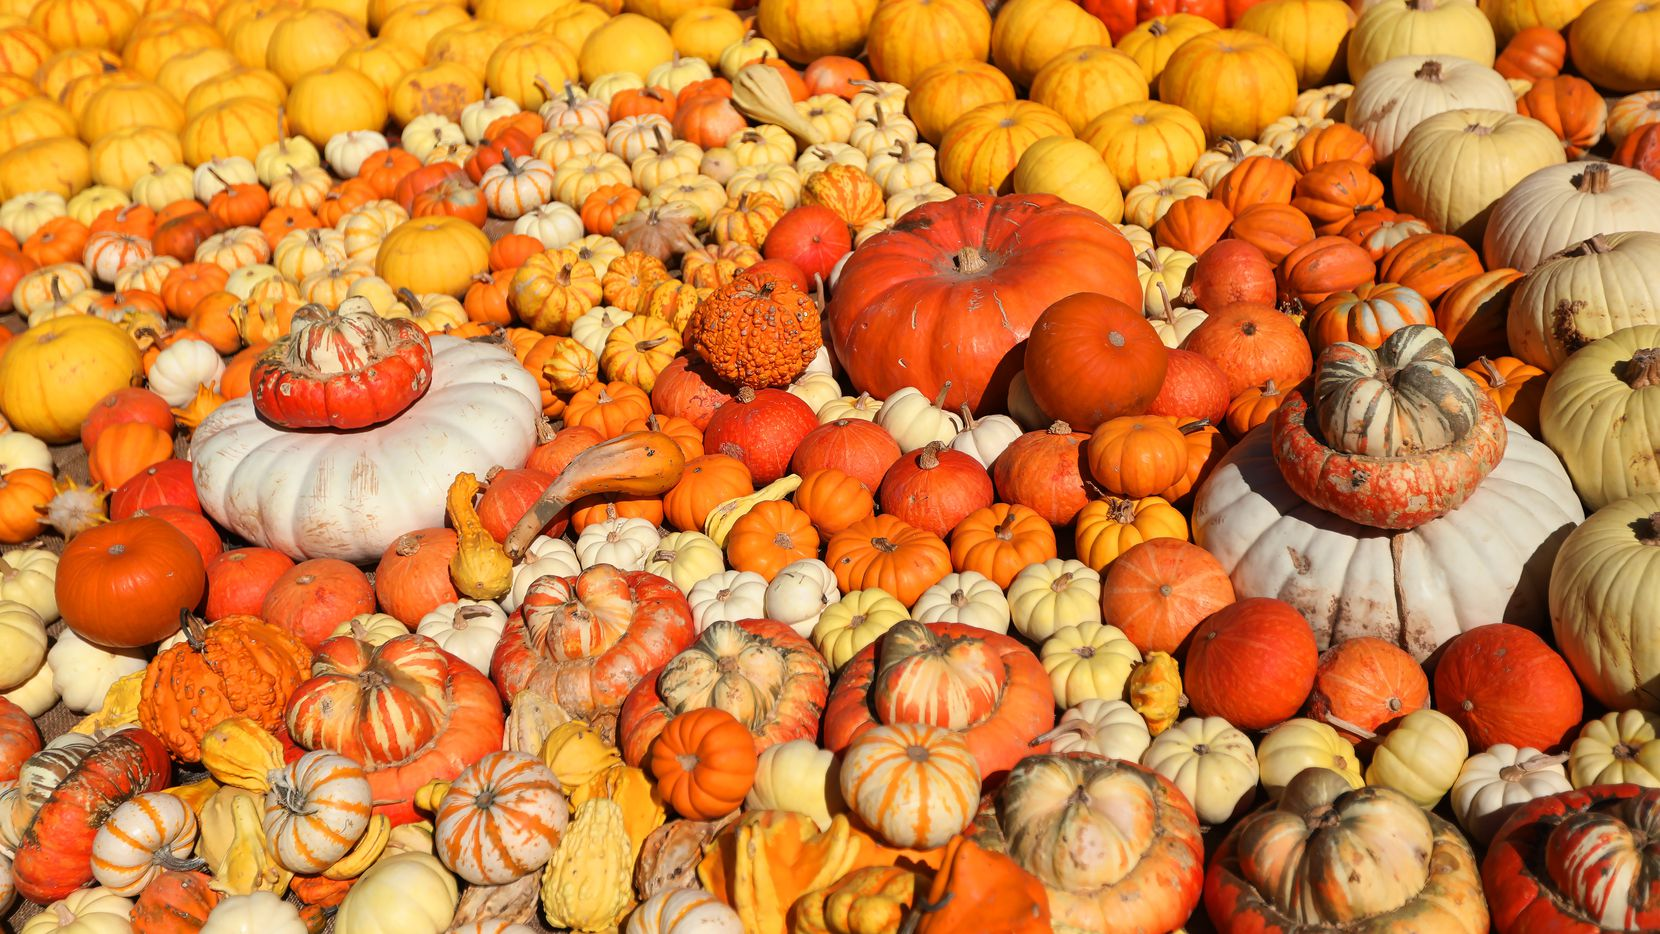 Pumpkins fill the ground at the Dallas Arboretum in Dallas, Texas, Sunday,  October 9, 2021. Allen will celebrate the season on Saturday, Oct. 16 with Harvest Festival at the South Lawn & Plaza at City Hall.